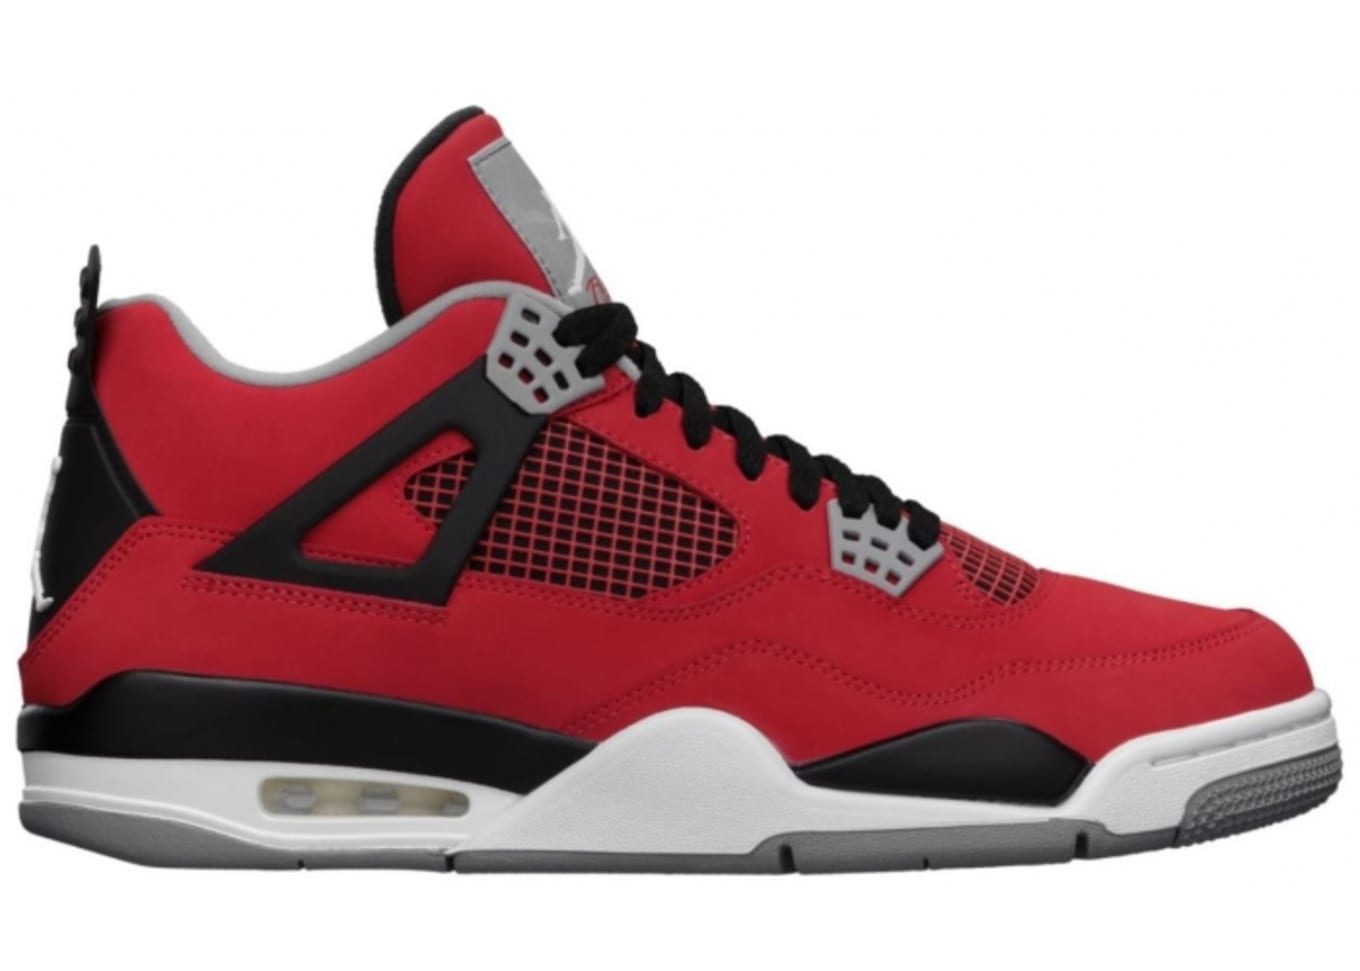 new arrival 3cb4f dee8e Air Jordan 4 Retro